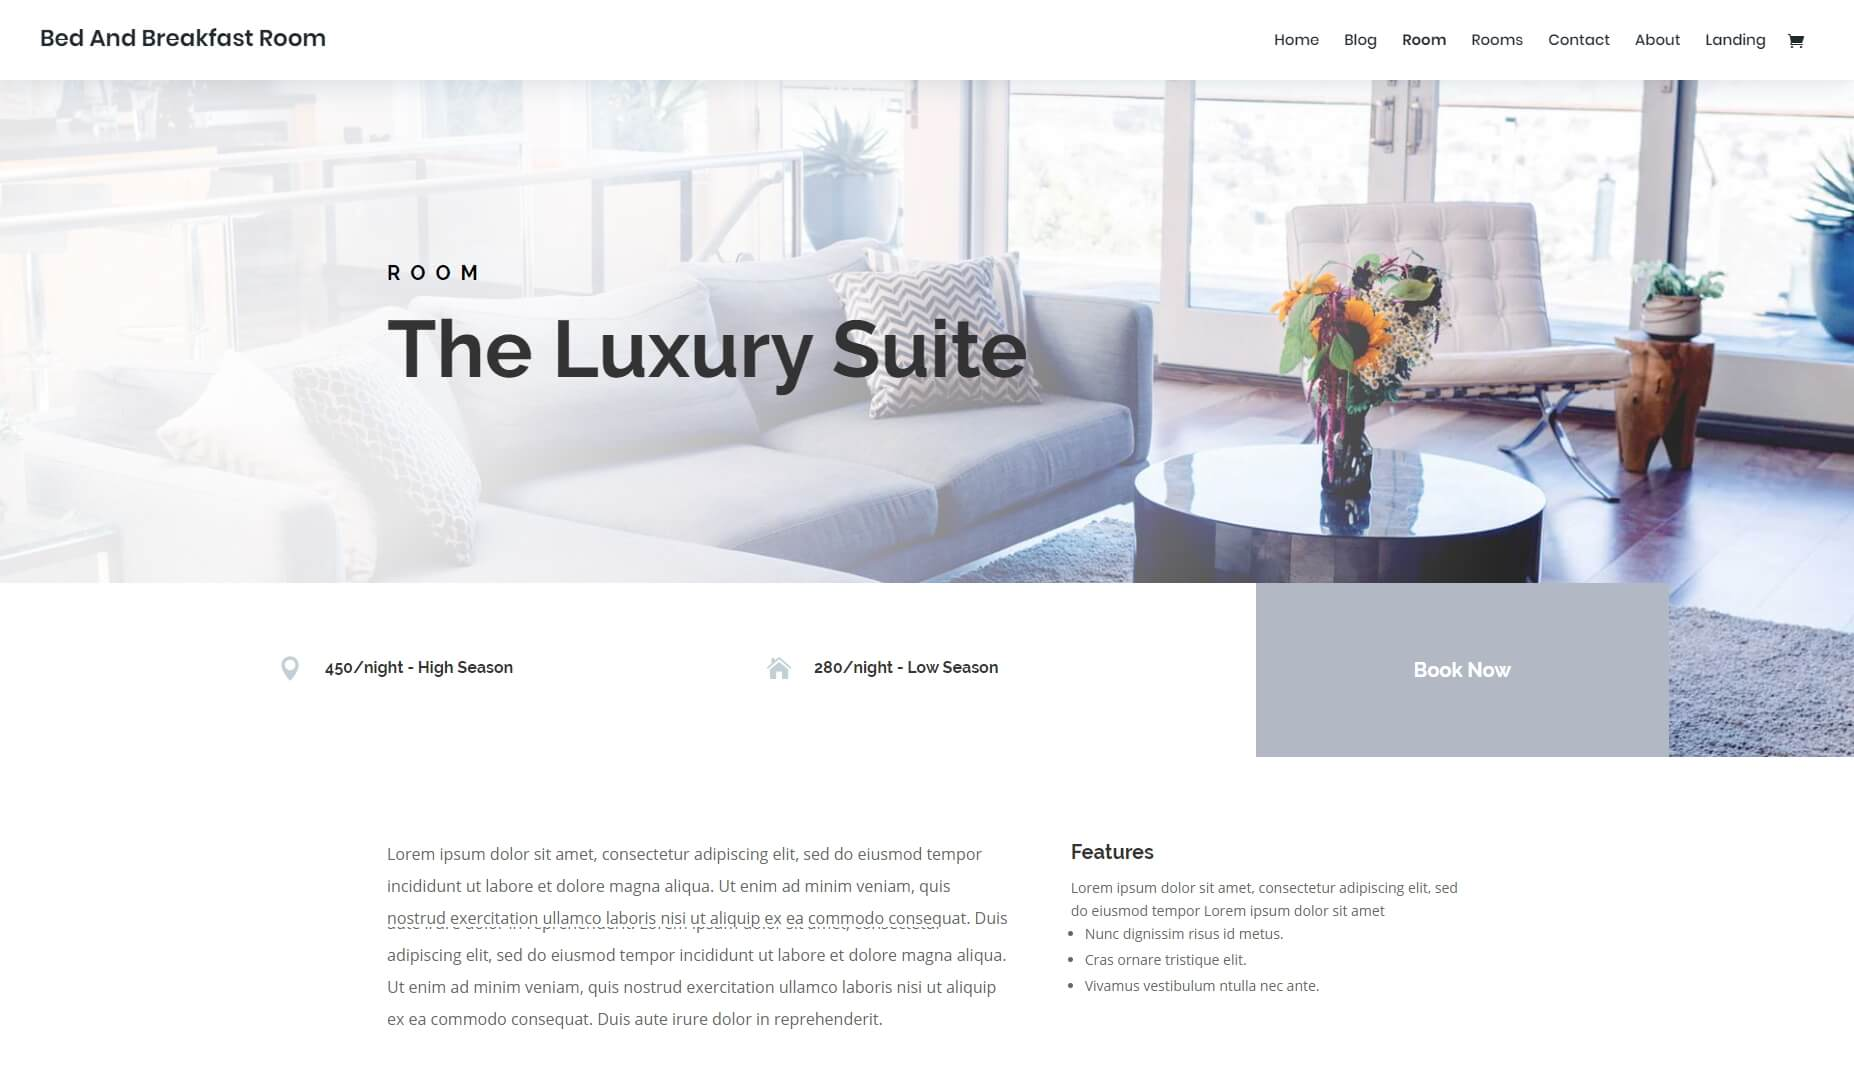 screencapture-elegantthemes-layouts-lifestyle-bed-and-breakfast-room-page-live-demo-2020-06-03-17_56_45